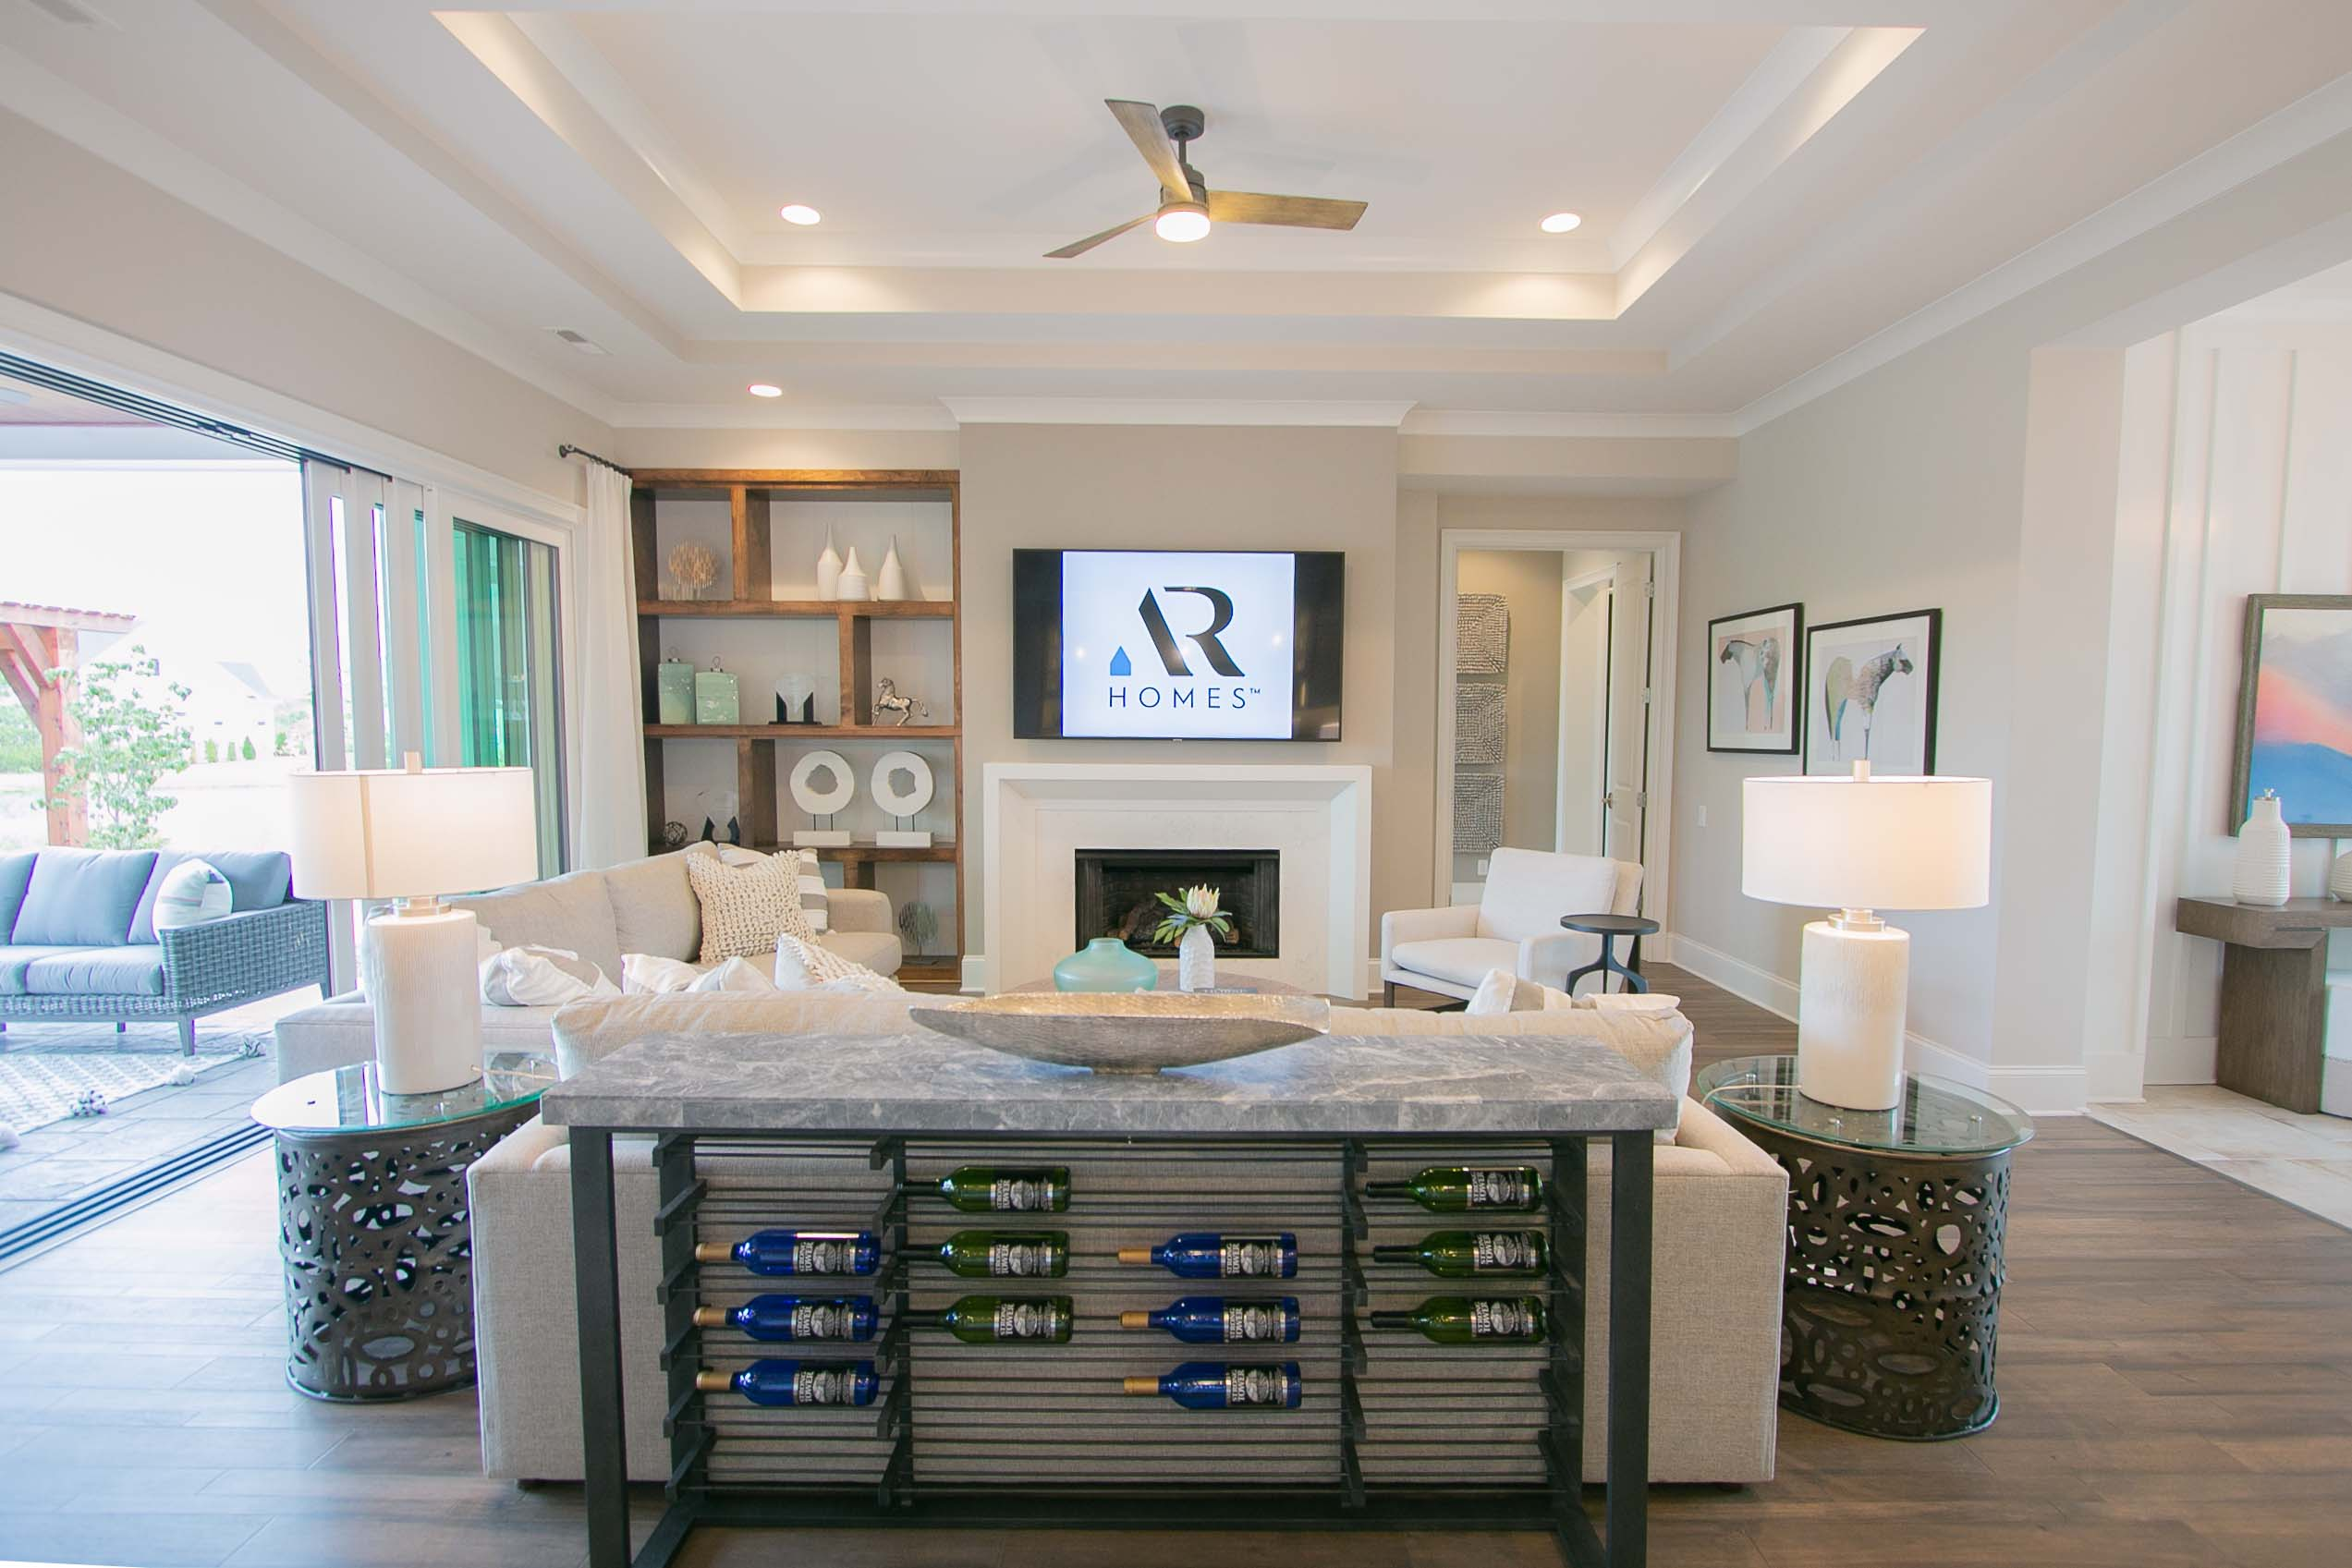 New Construction by AR Homes